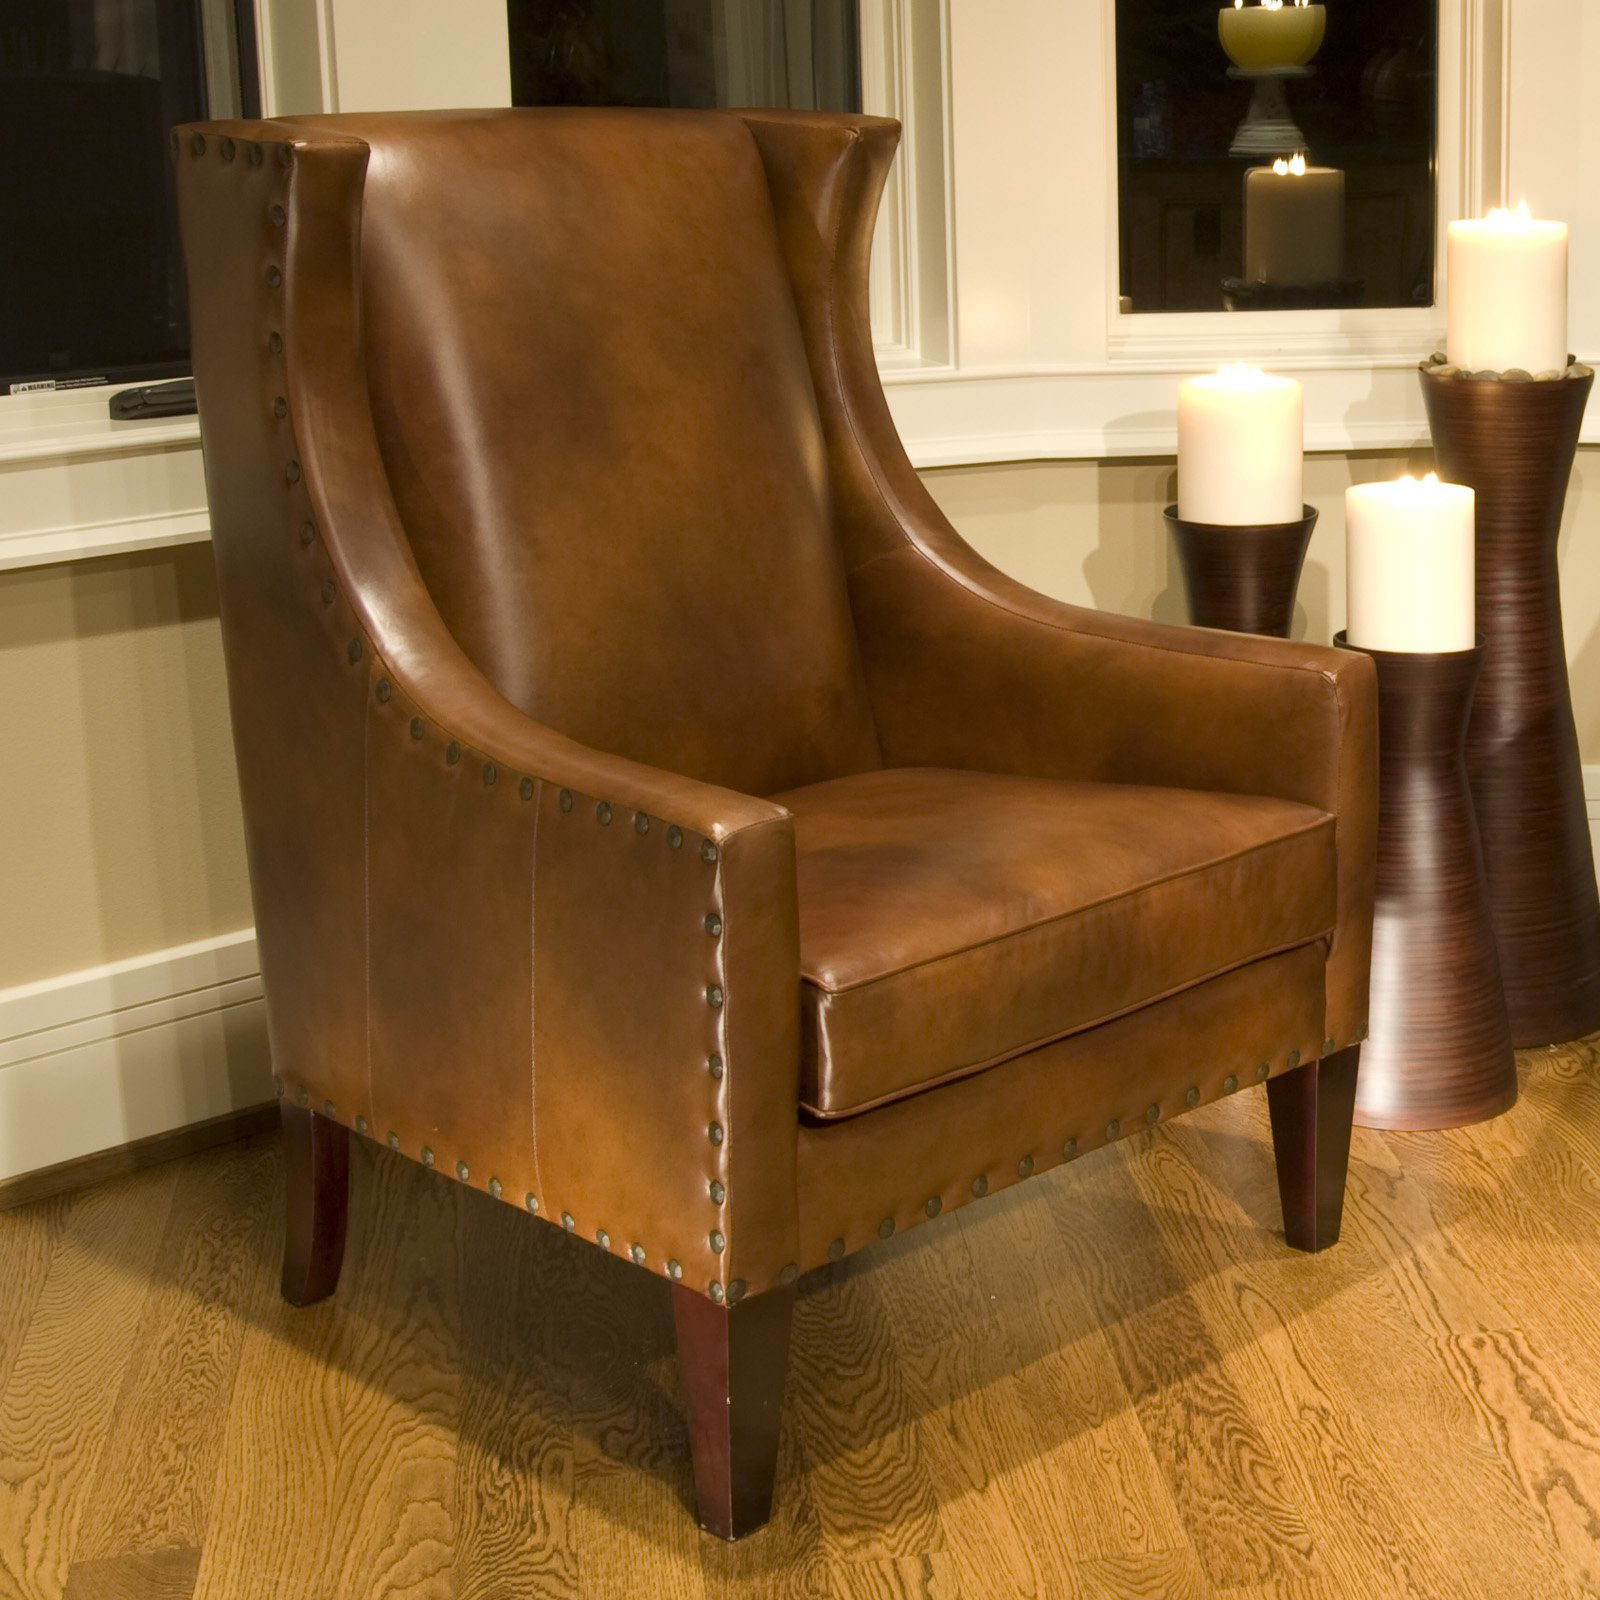 Bristol Top Grain Leather Accent Chair in Rustic Color